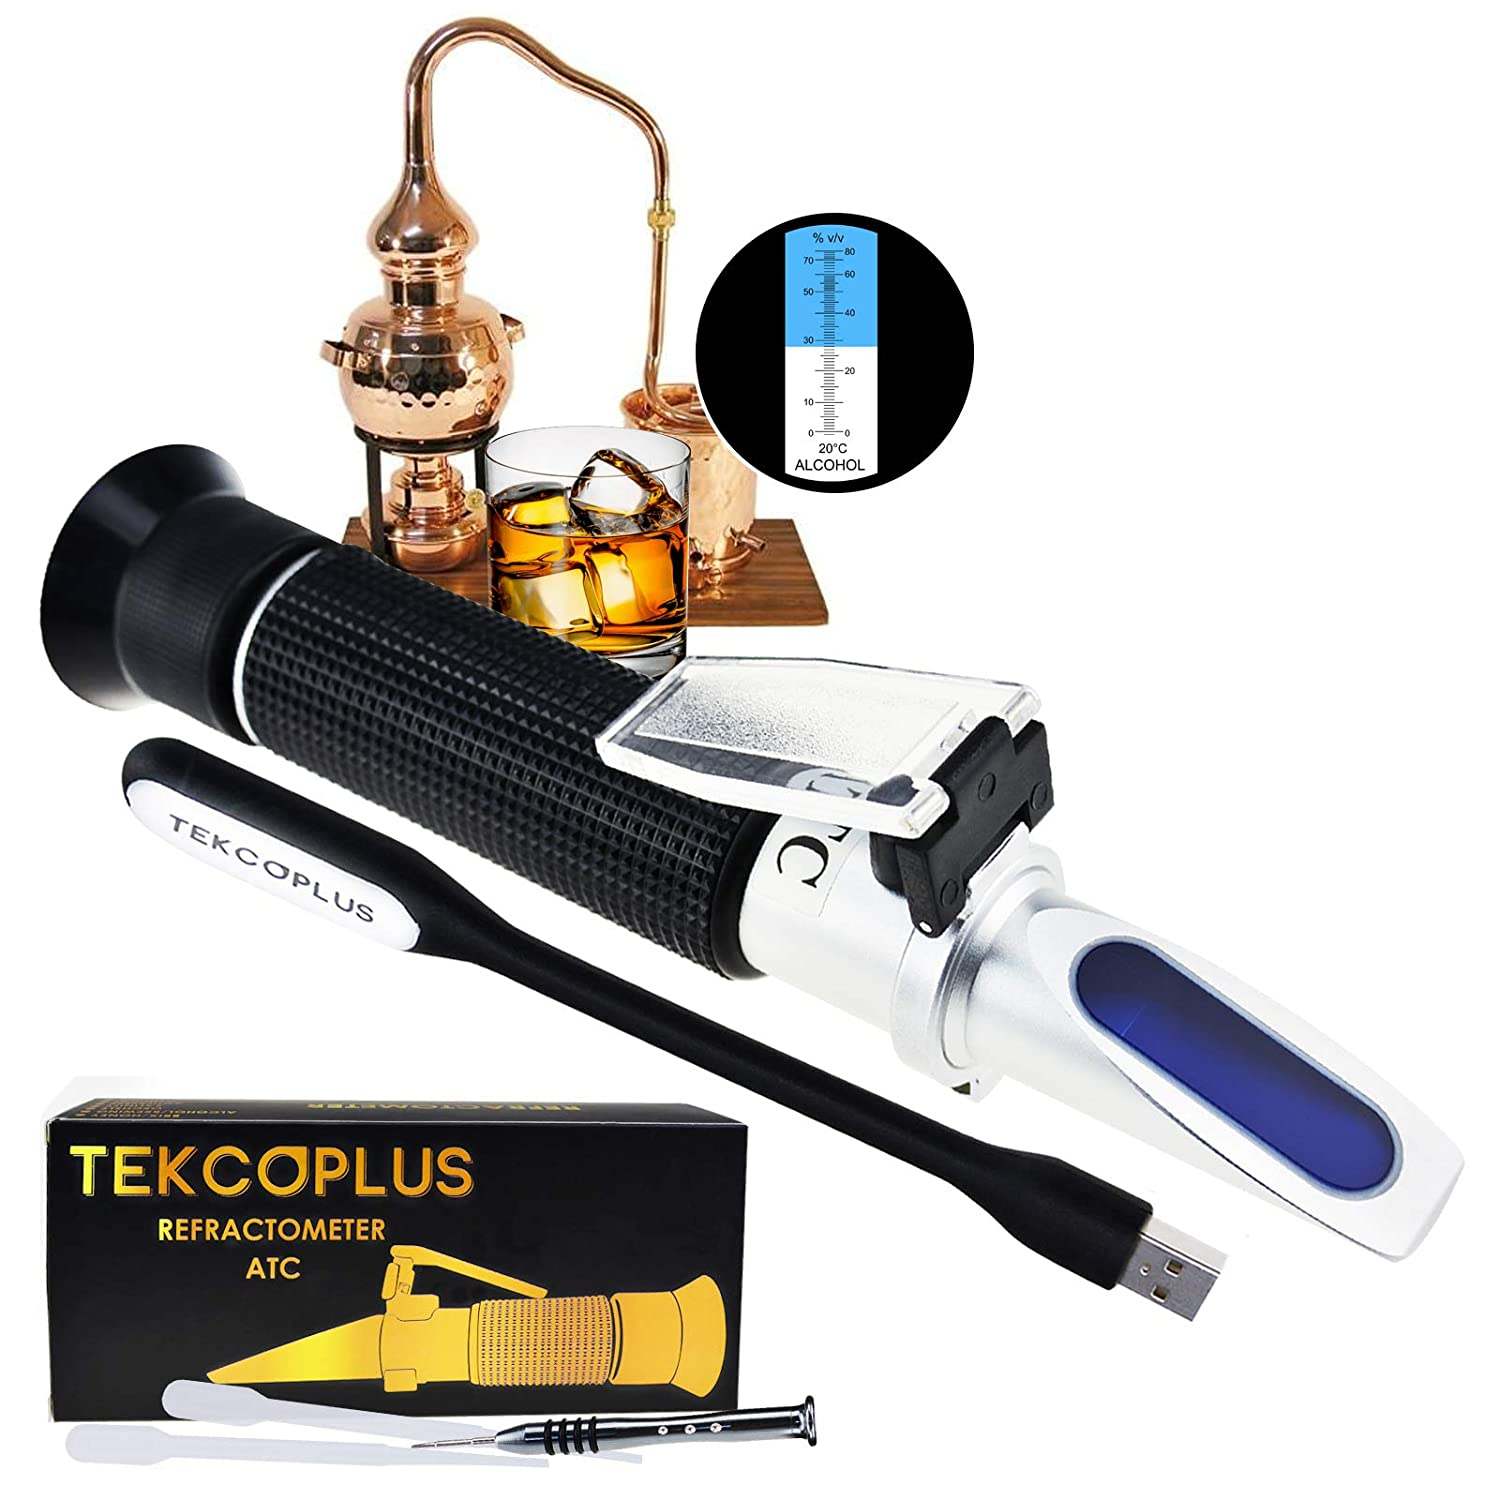 Optics Alcohol Refractometer 0-80% Volume Percent ATC, For Alcohol Liquor production, Spirit Alcohol Measurement, Ethanol with water, Distilled beverages, Winemakers, with EXTRA LED light & pipettes TekcoPlus Ltd RETK-75